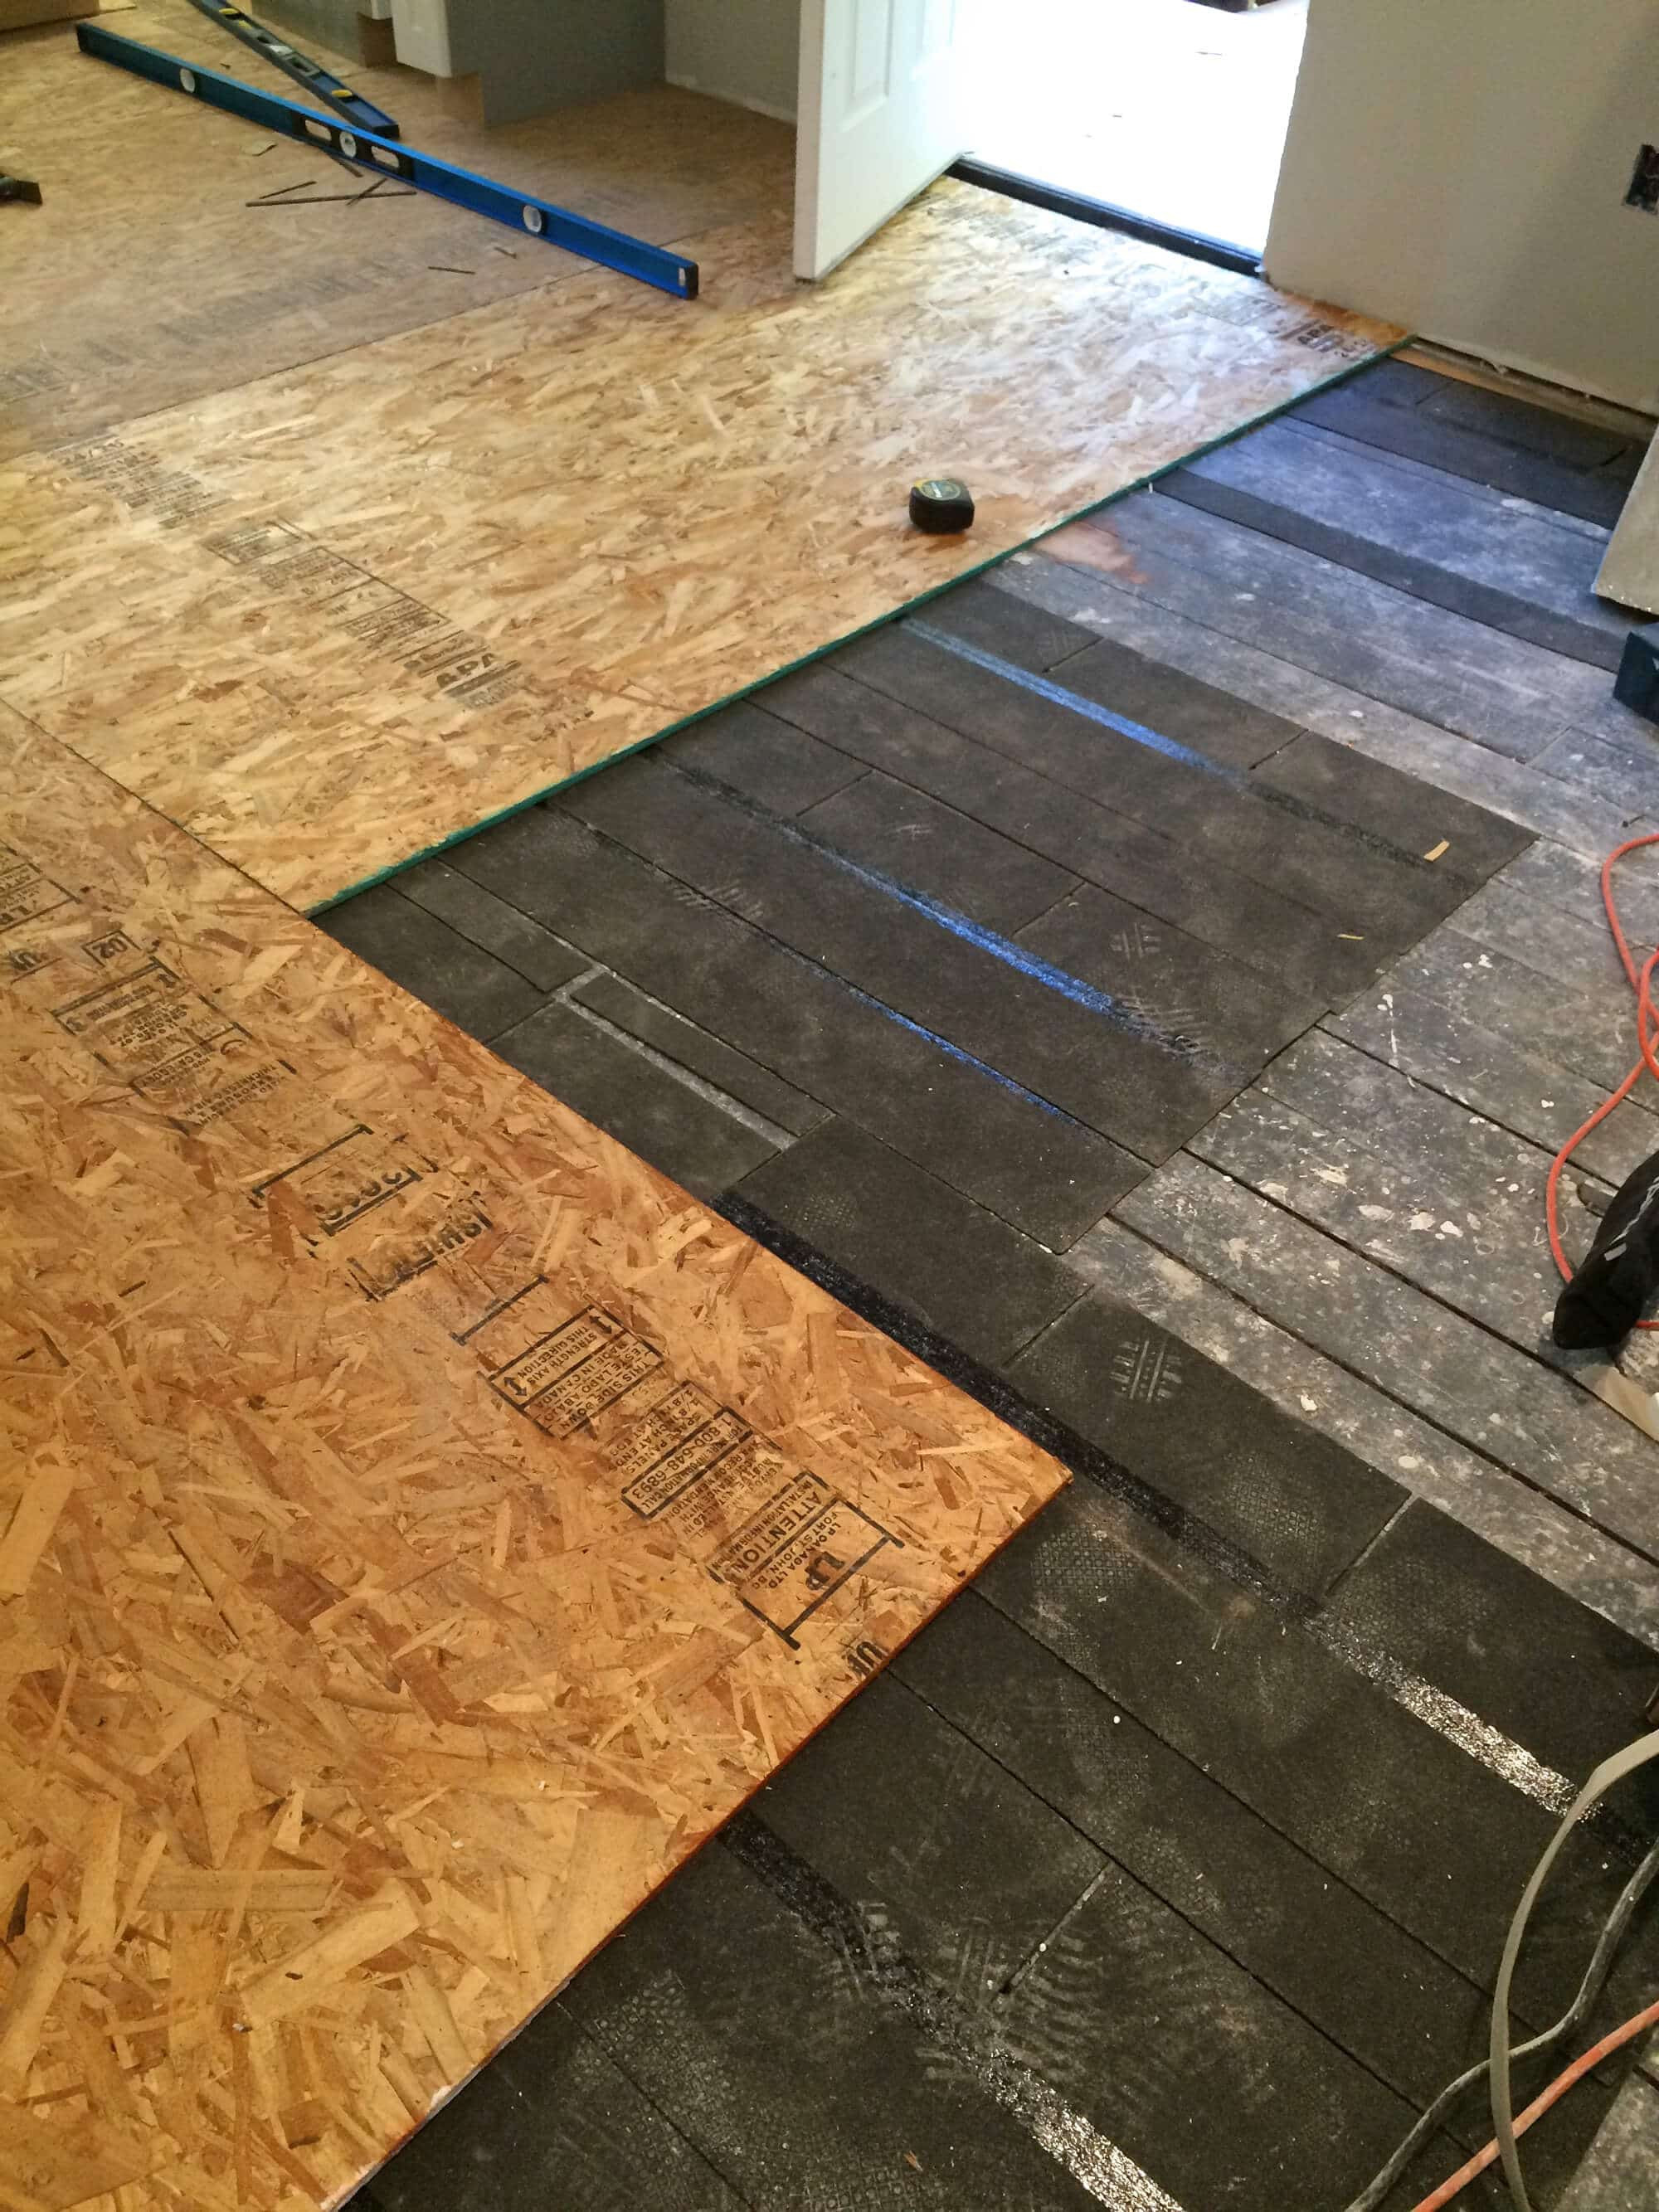 lowes canada hardwood flooring sale of the micro dwelling project part 5 flooring the daring gourmet in we secured the sub flooring with construction screws its generally recommended to space the screws every 8 inches in a grid pattern